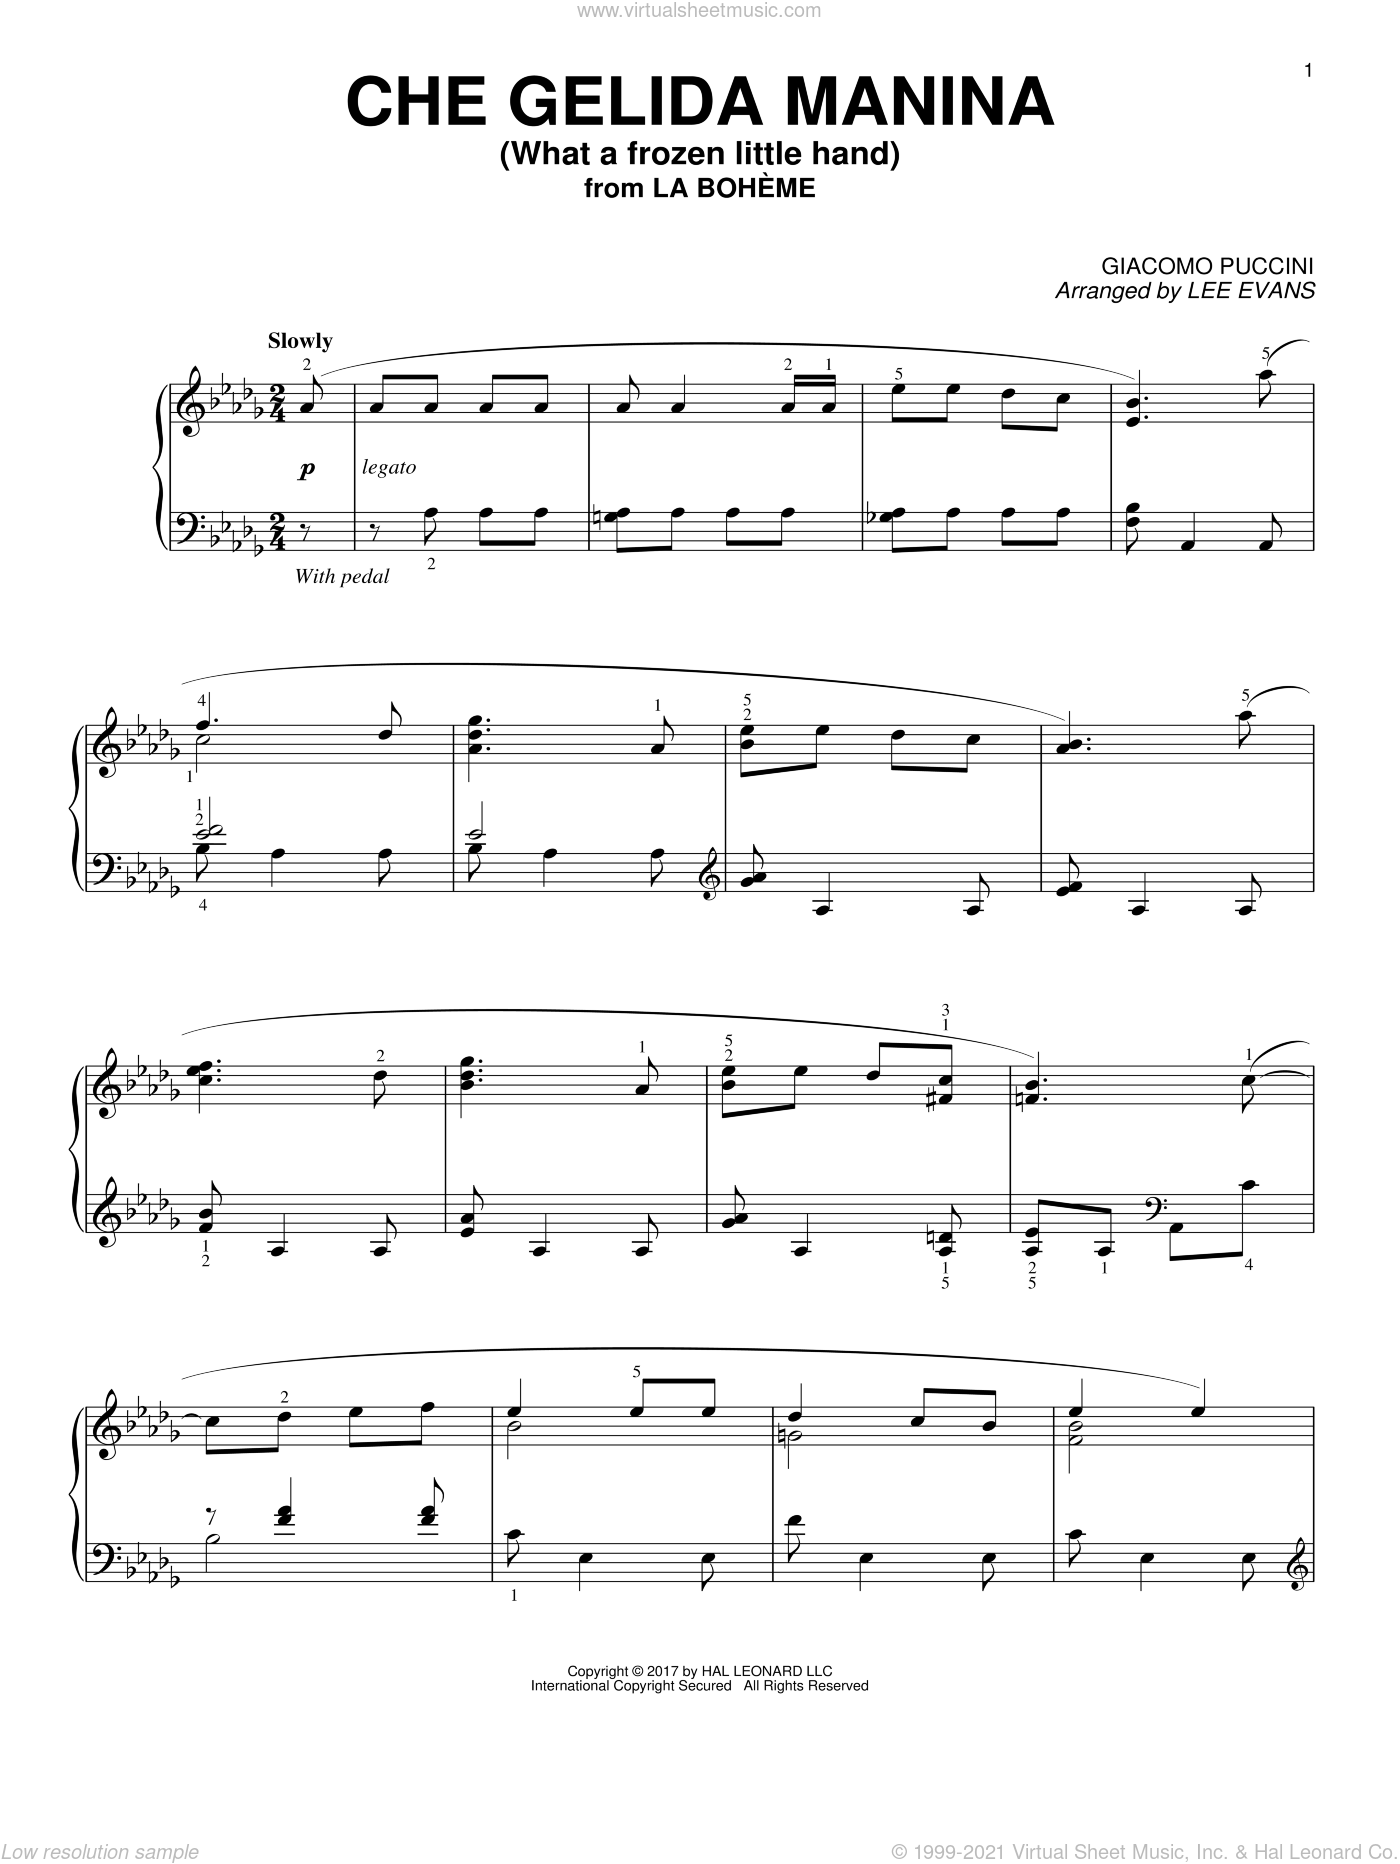 Che gelida manina from La Boheme sheet music for piano solo by Giacomo Puccini and Lee Evans, classical score, intermediate